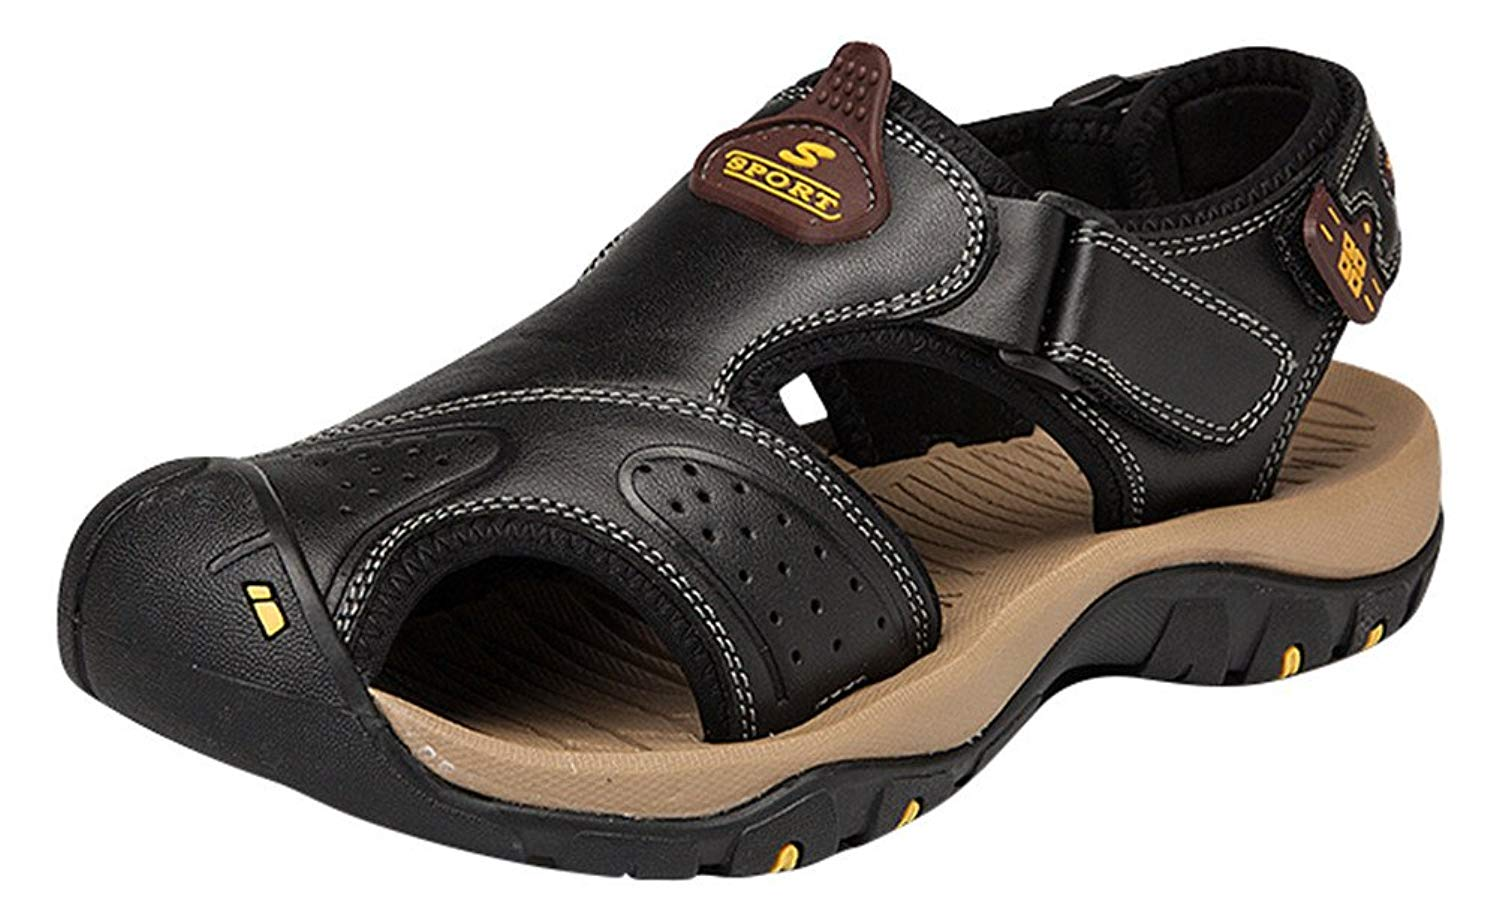 8dd9986040f Get Quotations · ACE SHOCK Athletic Sandals Men Leather